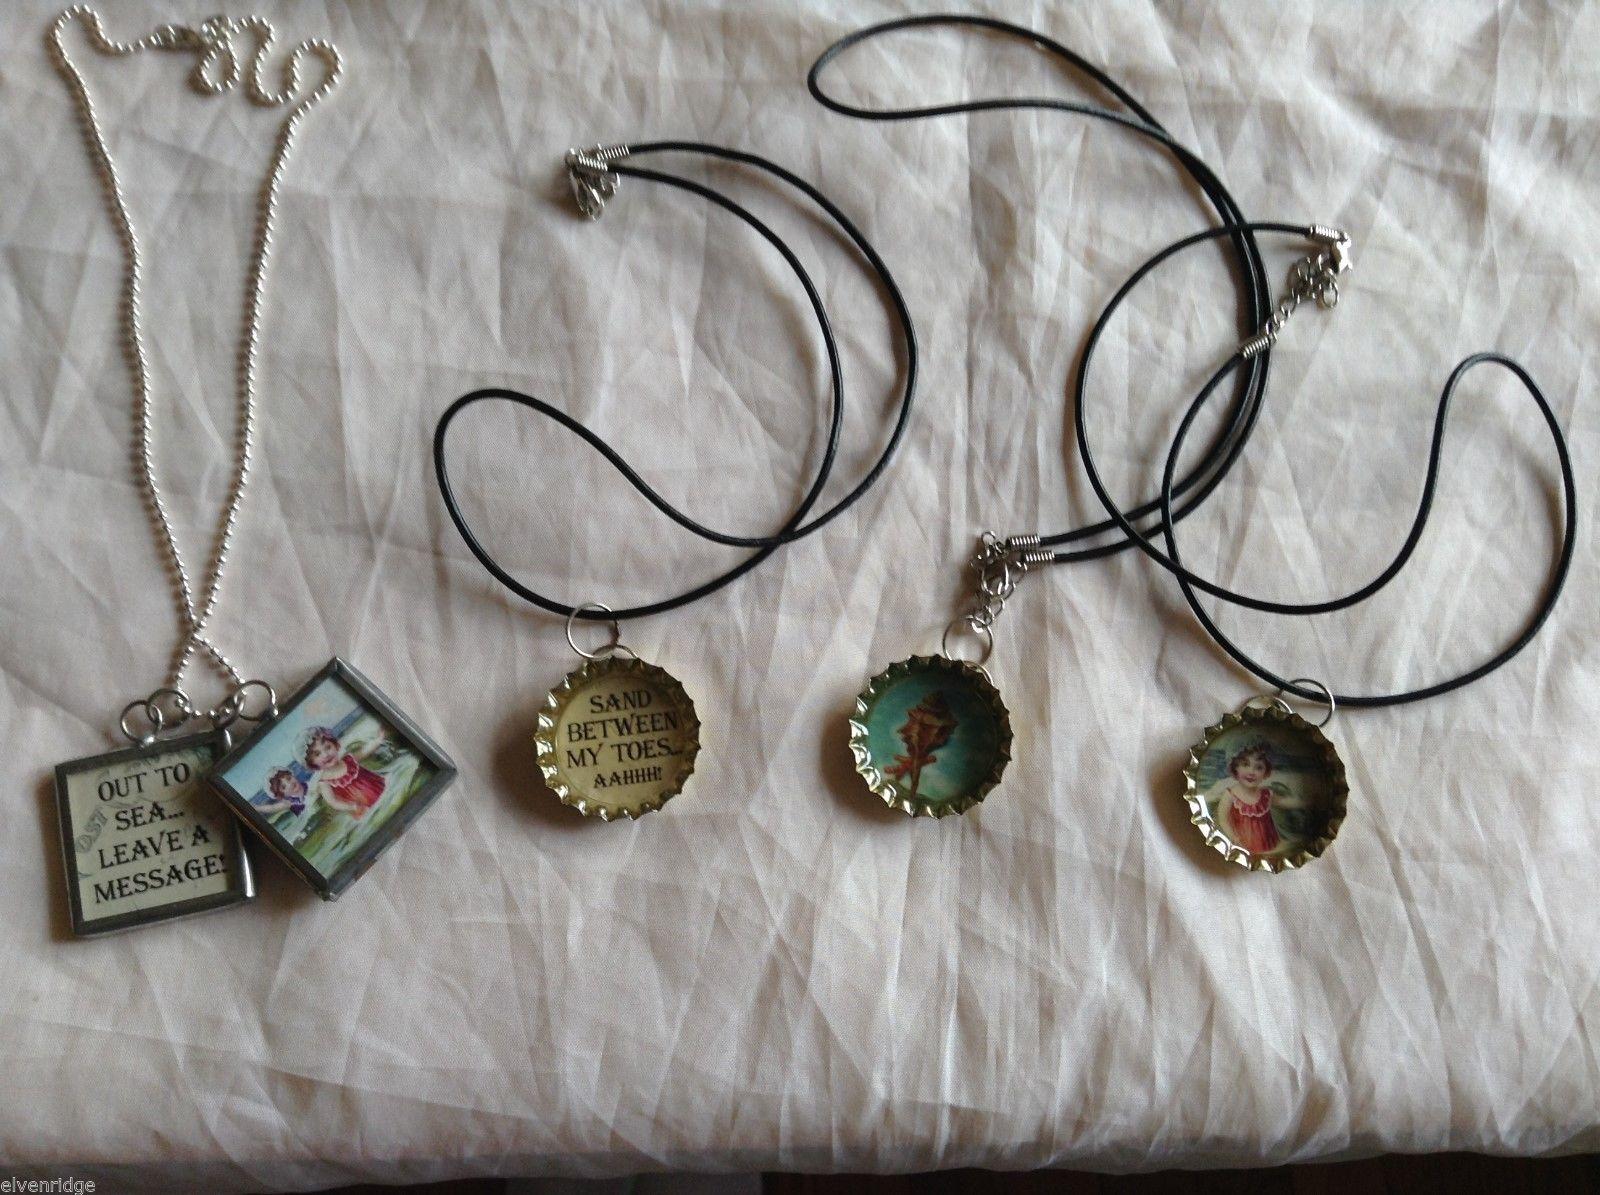 Lot of 4 necklaces, bottle cap square charms, 8-1/2 inches sea shore ocean beach